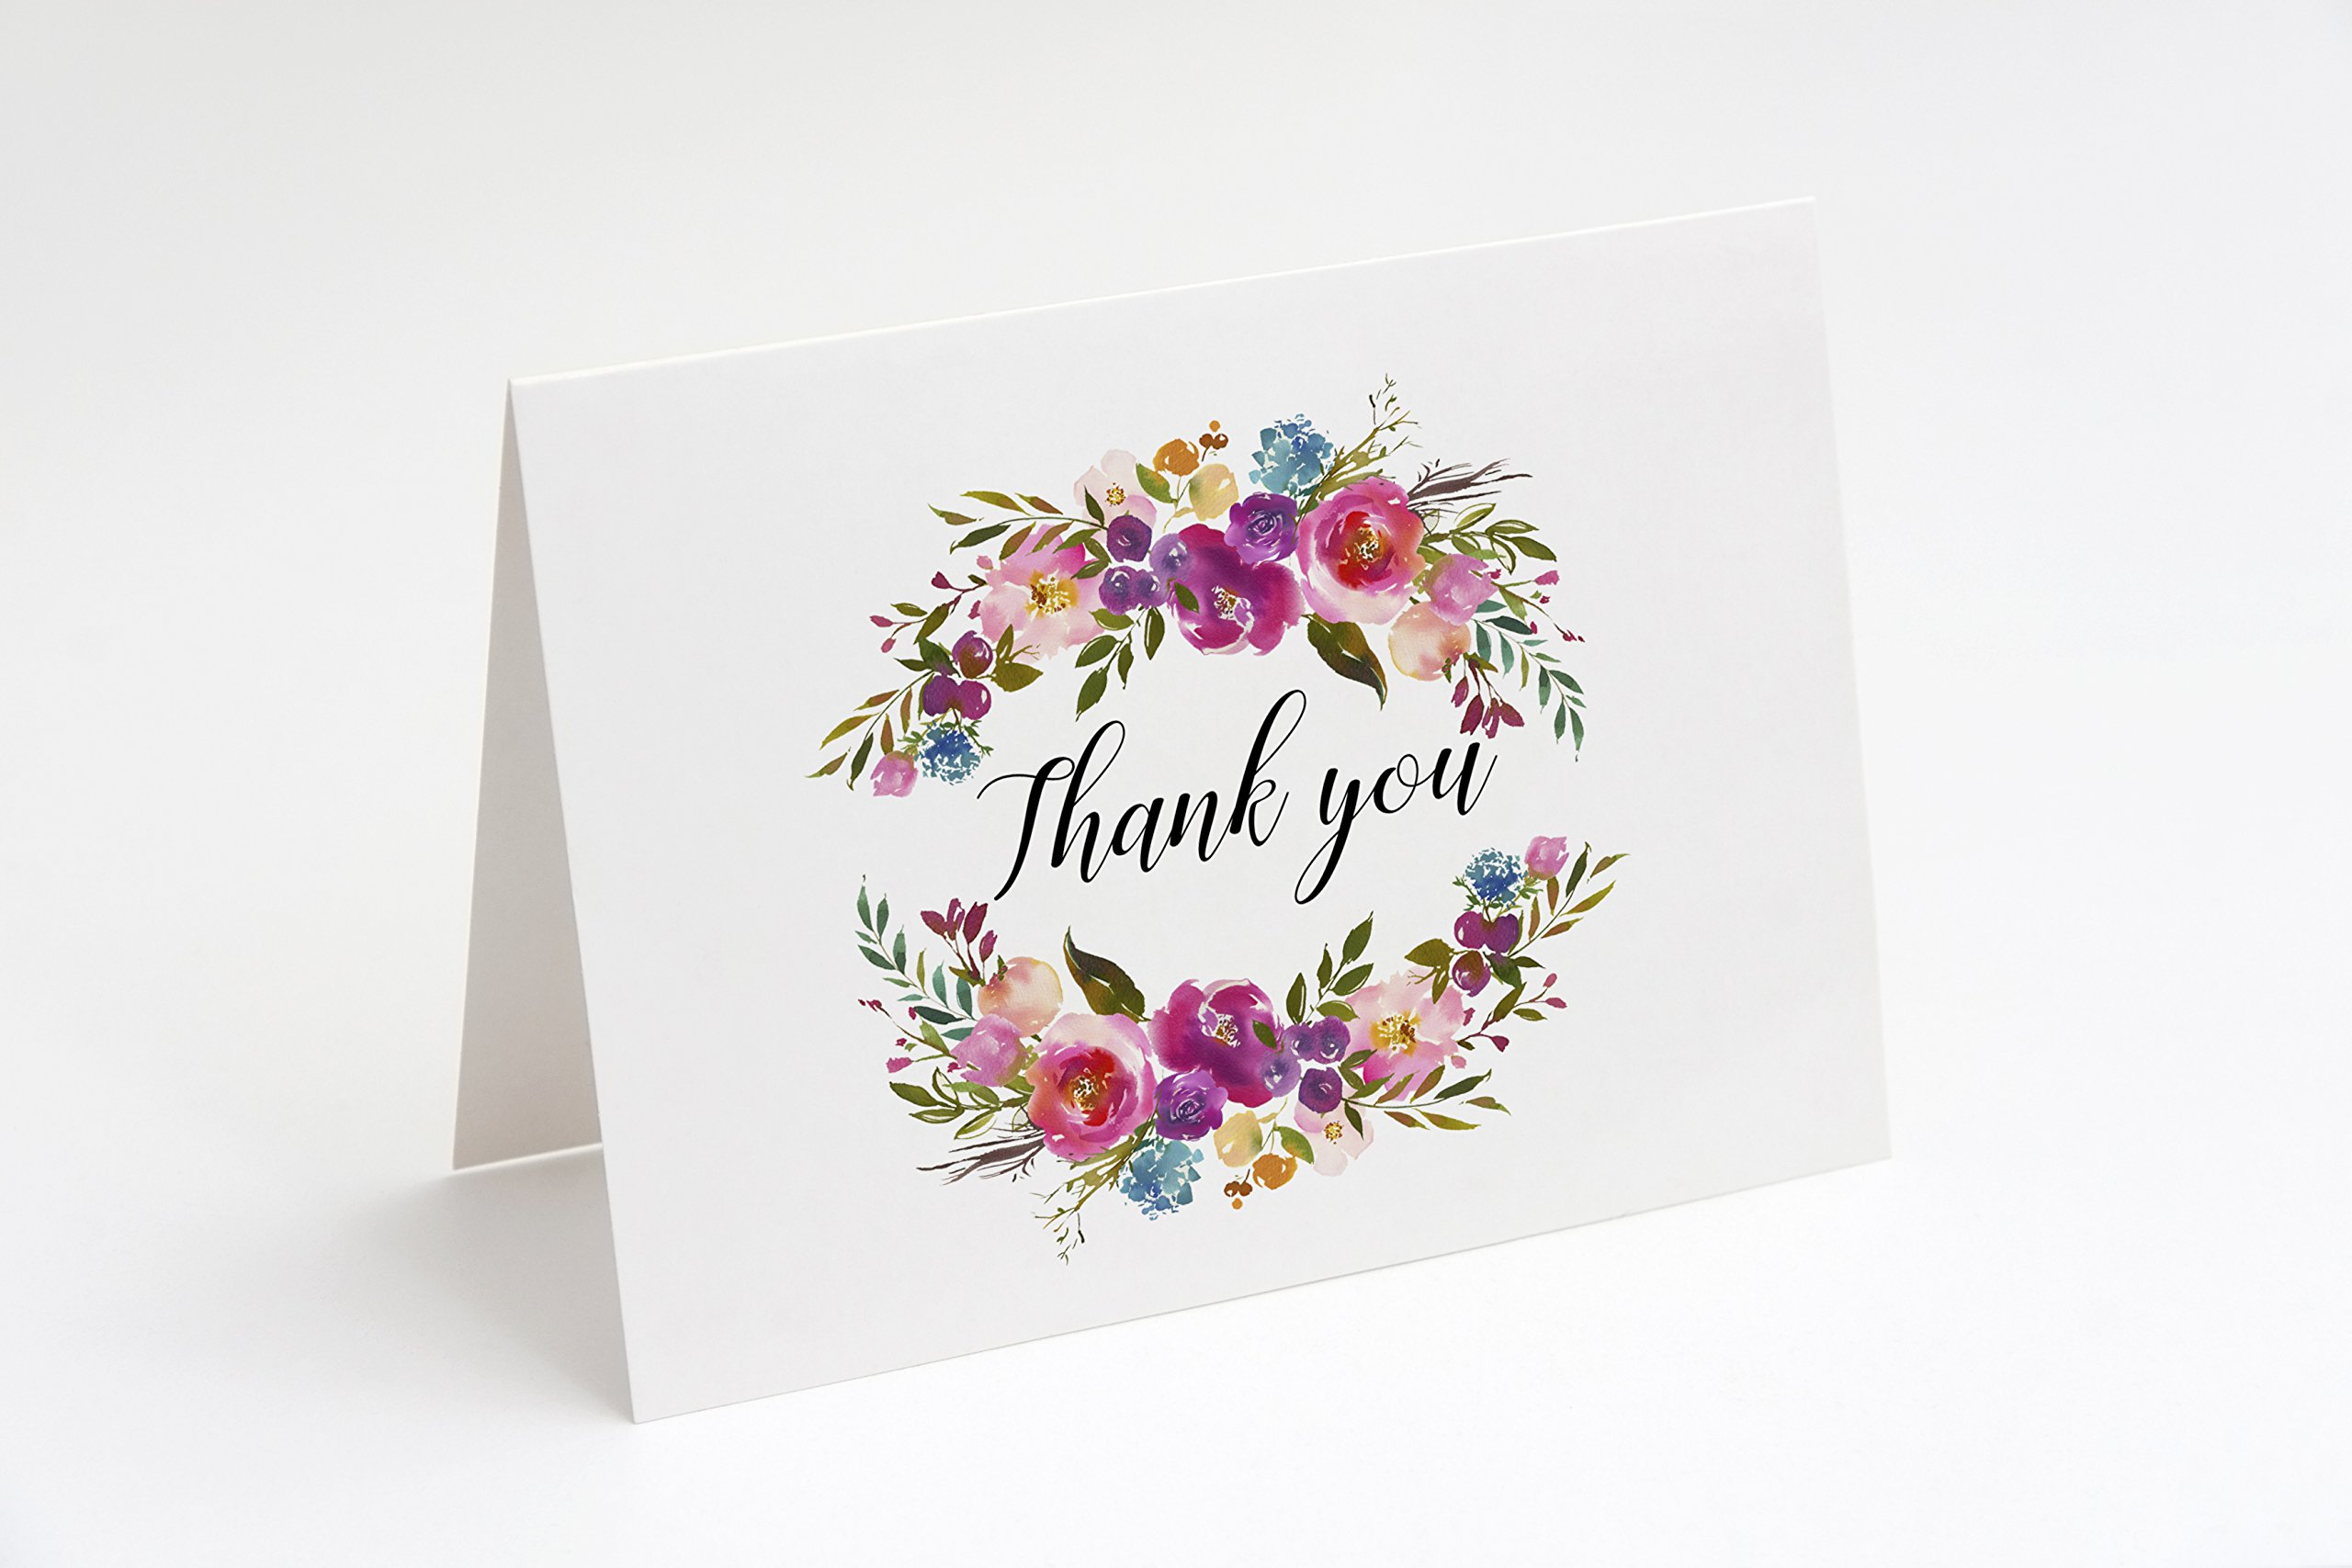 Thank You Cards, Thank You Notes, 24 Floral Thank You Cards With Envelopes, Bohemian Thank You Cards